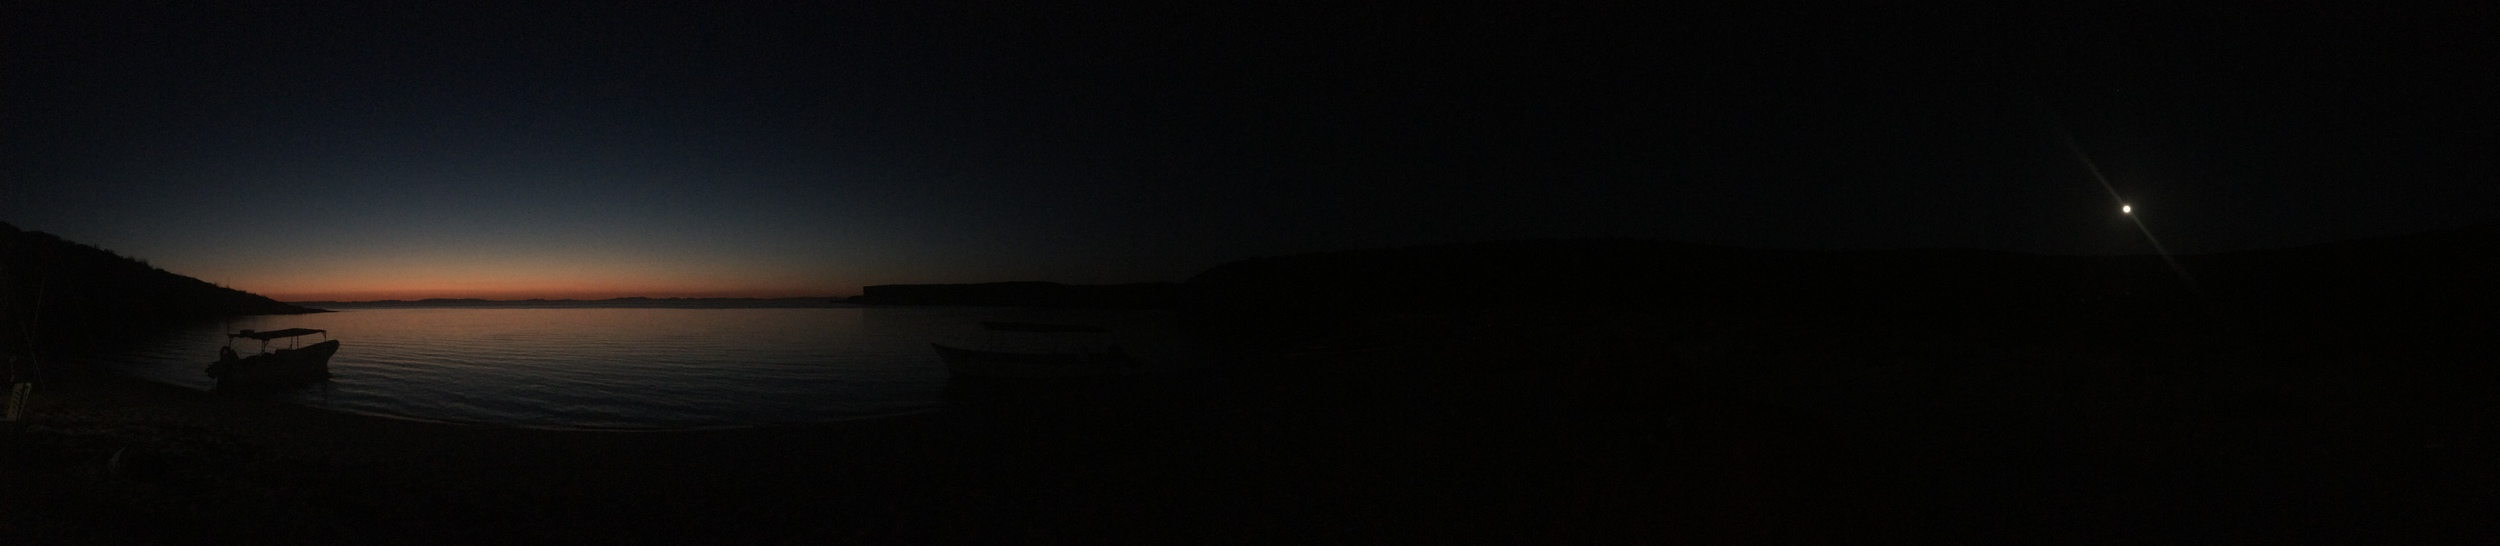 sunset and moon rise